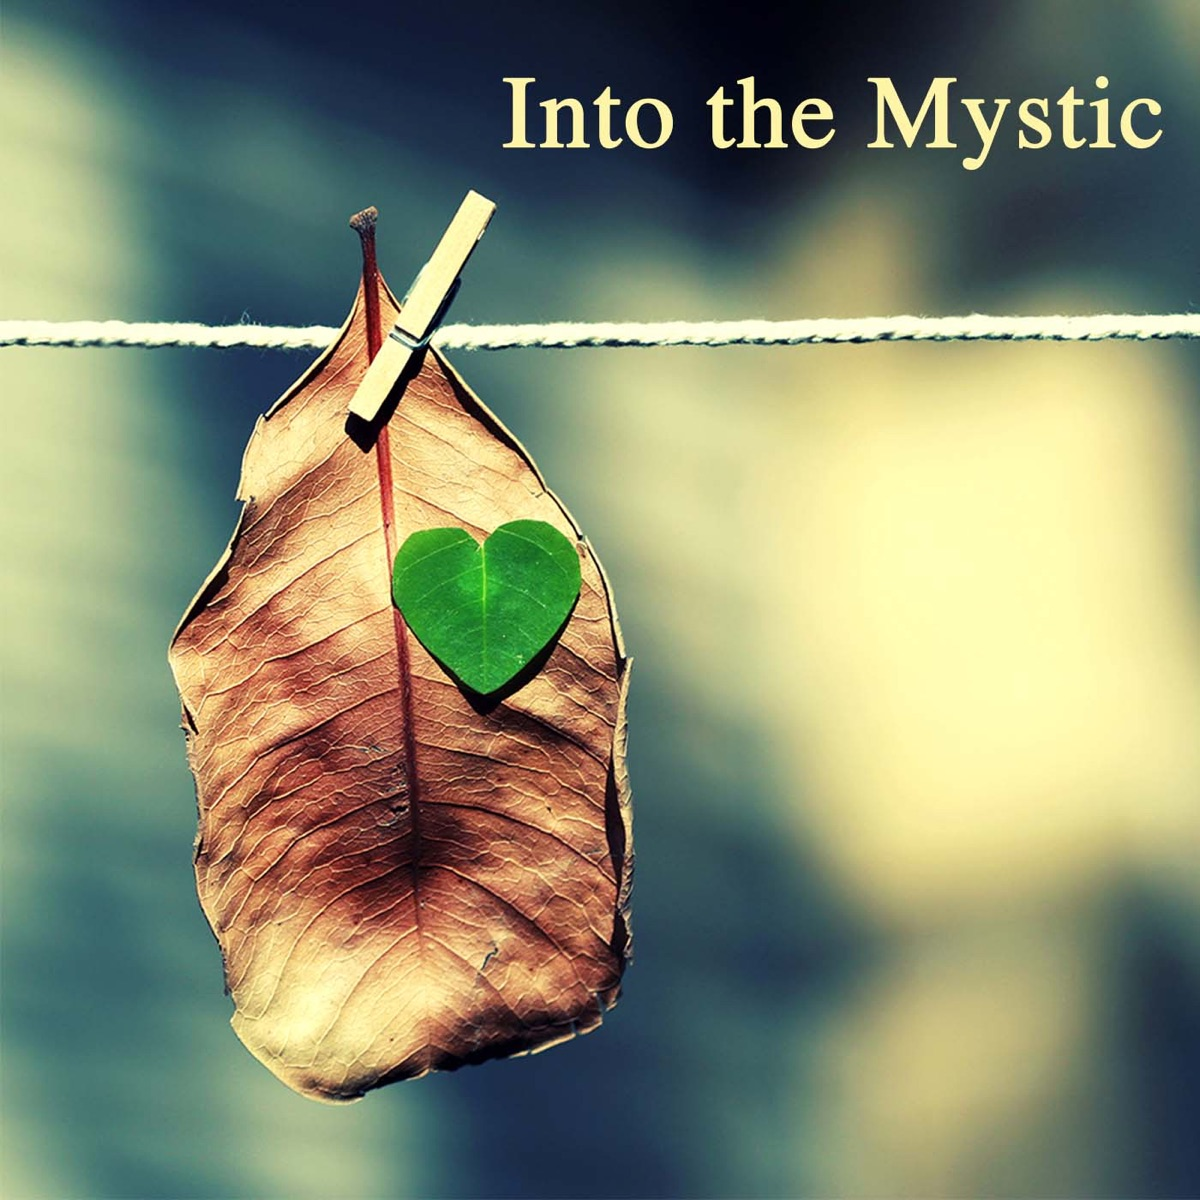 Into the Mystic: Mind & Body Relaxation Meditation Music